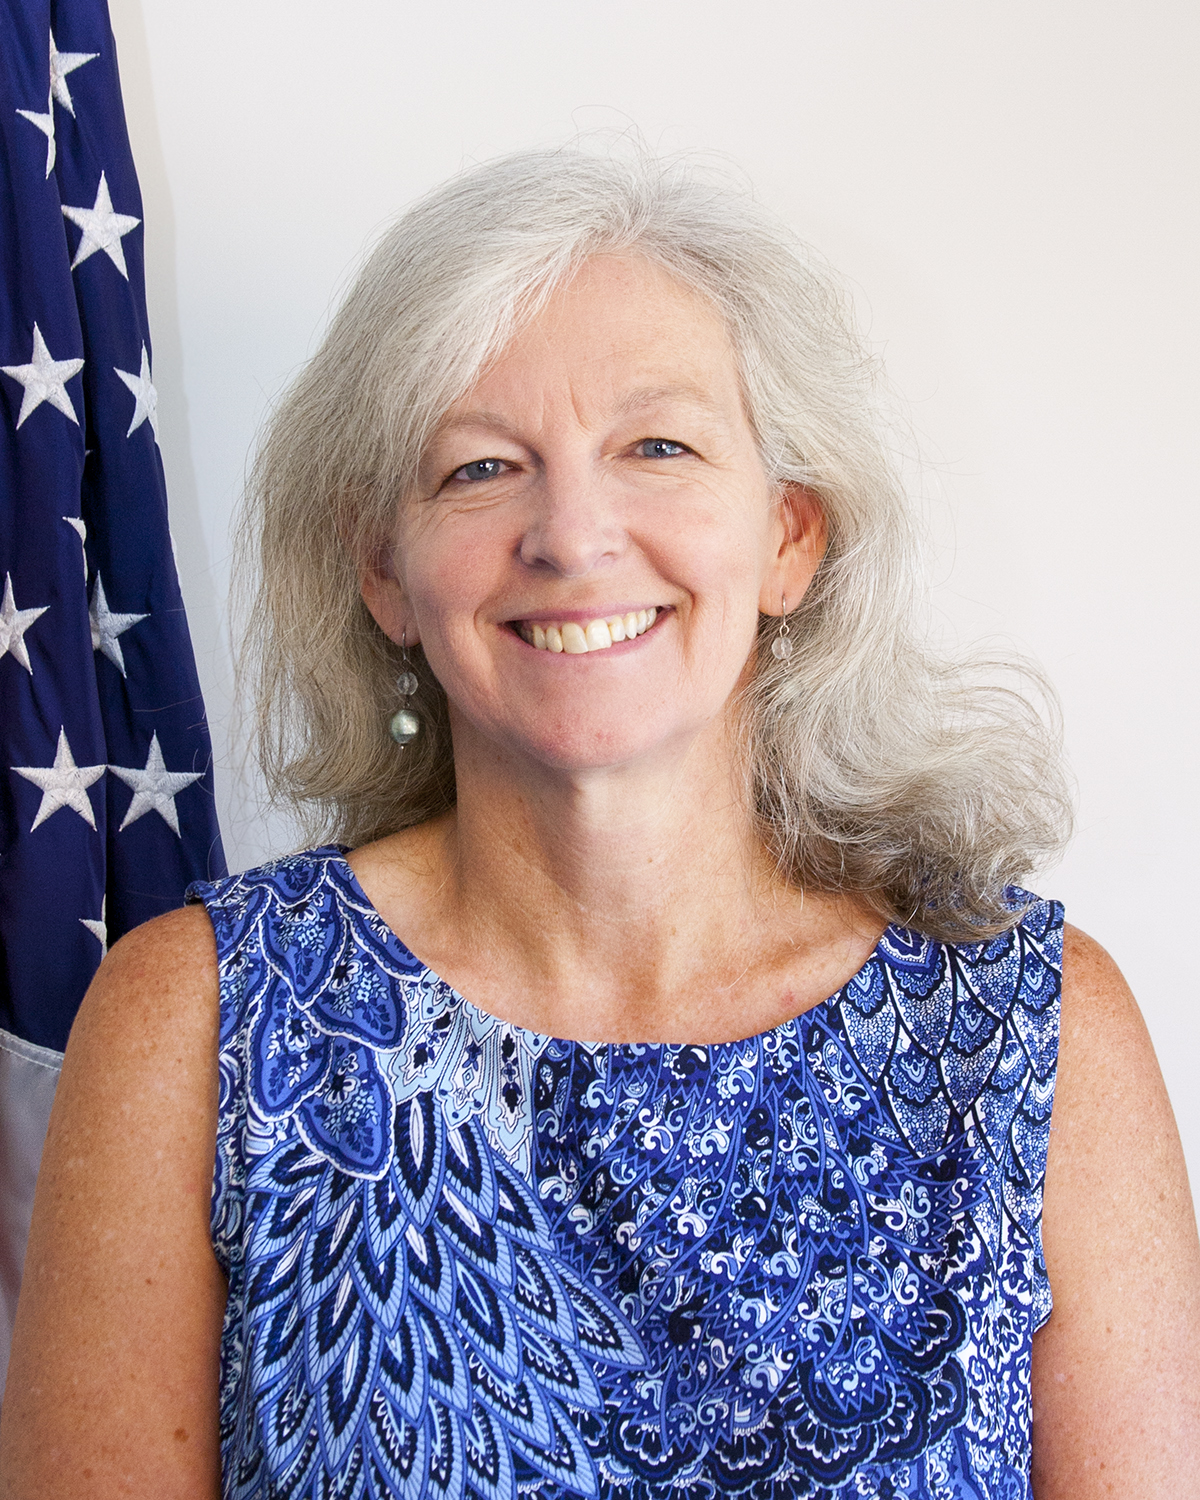 Ko Barrett, Deputy Assistant Administrator for Programs and Administration